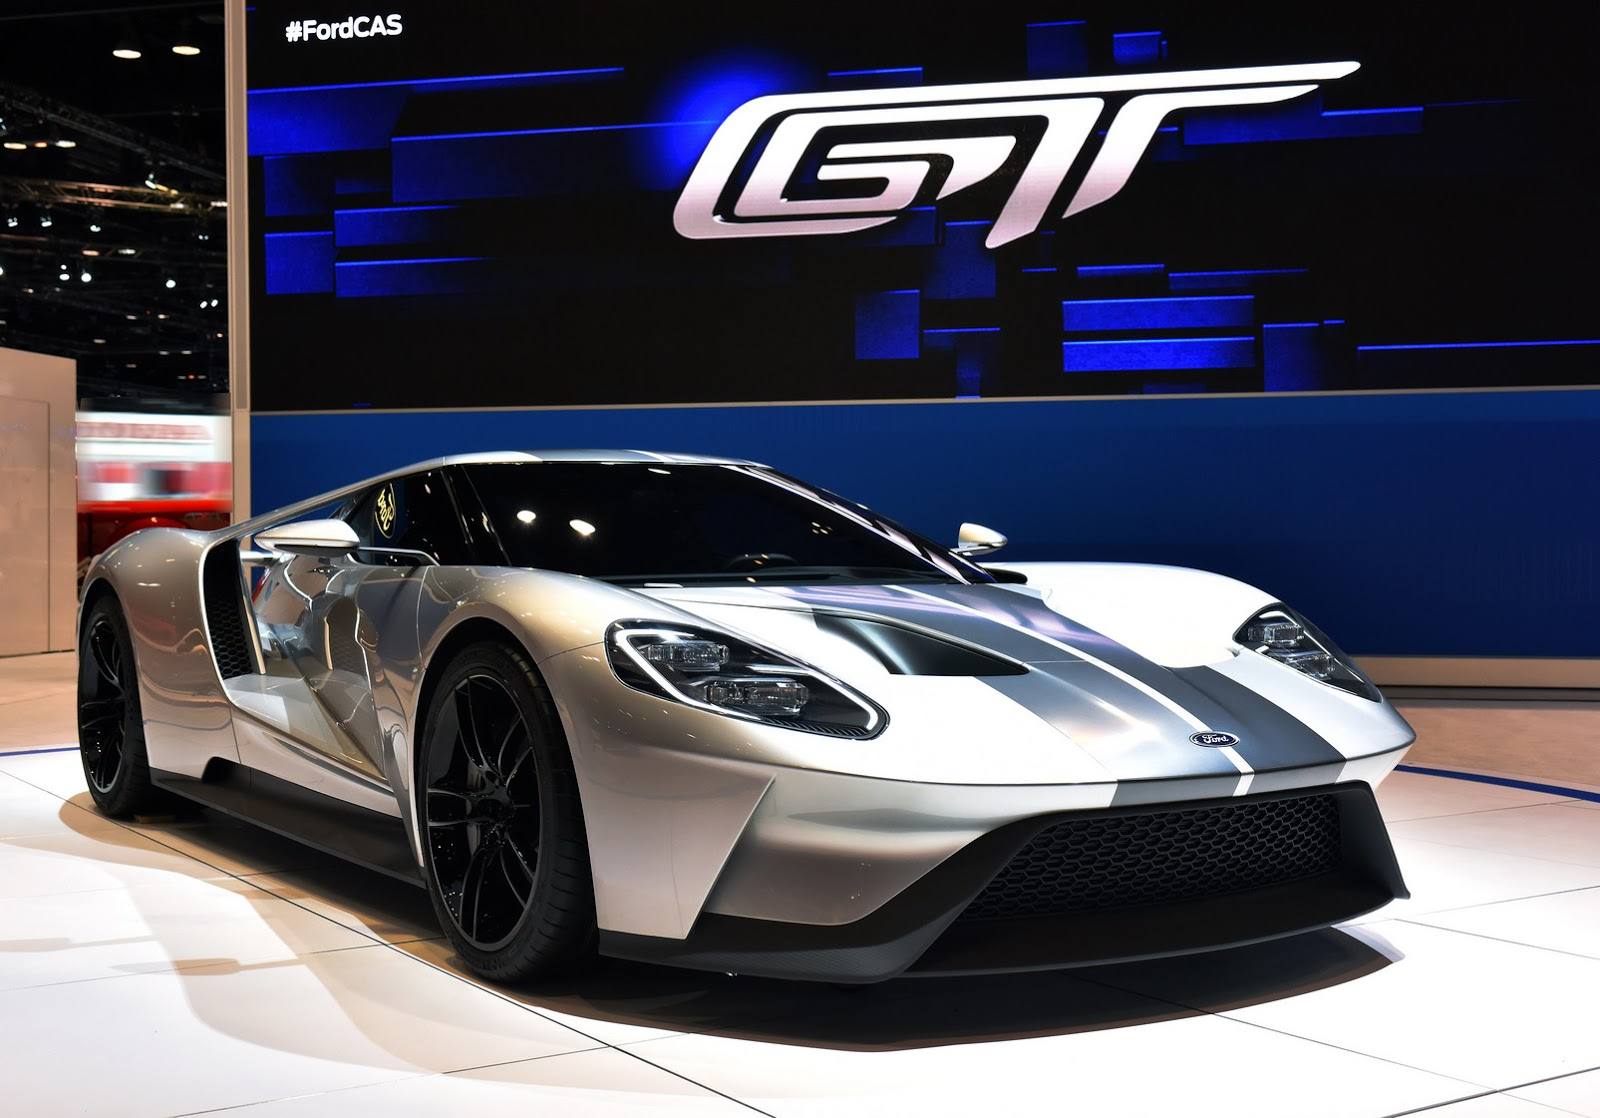 Ford predstavlja GT model u Liquid Silver boji